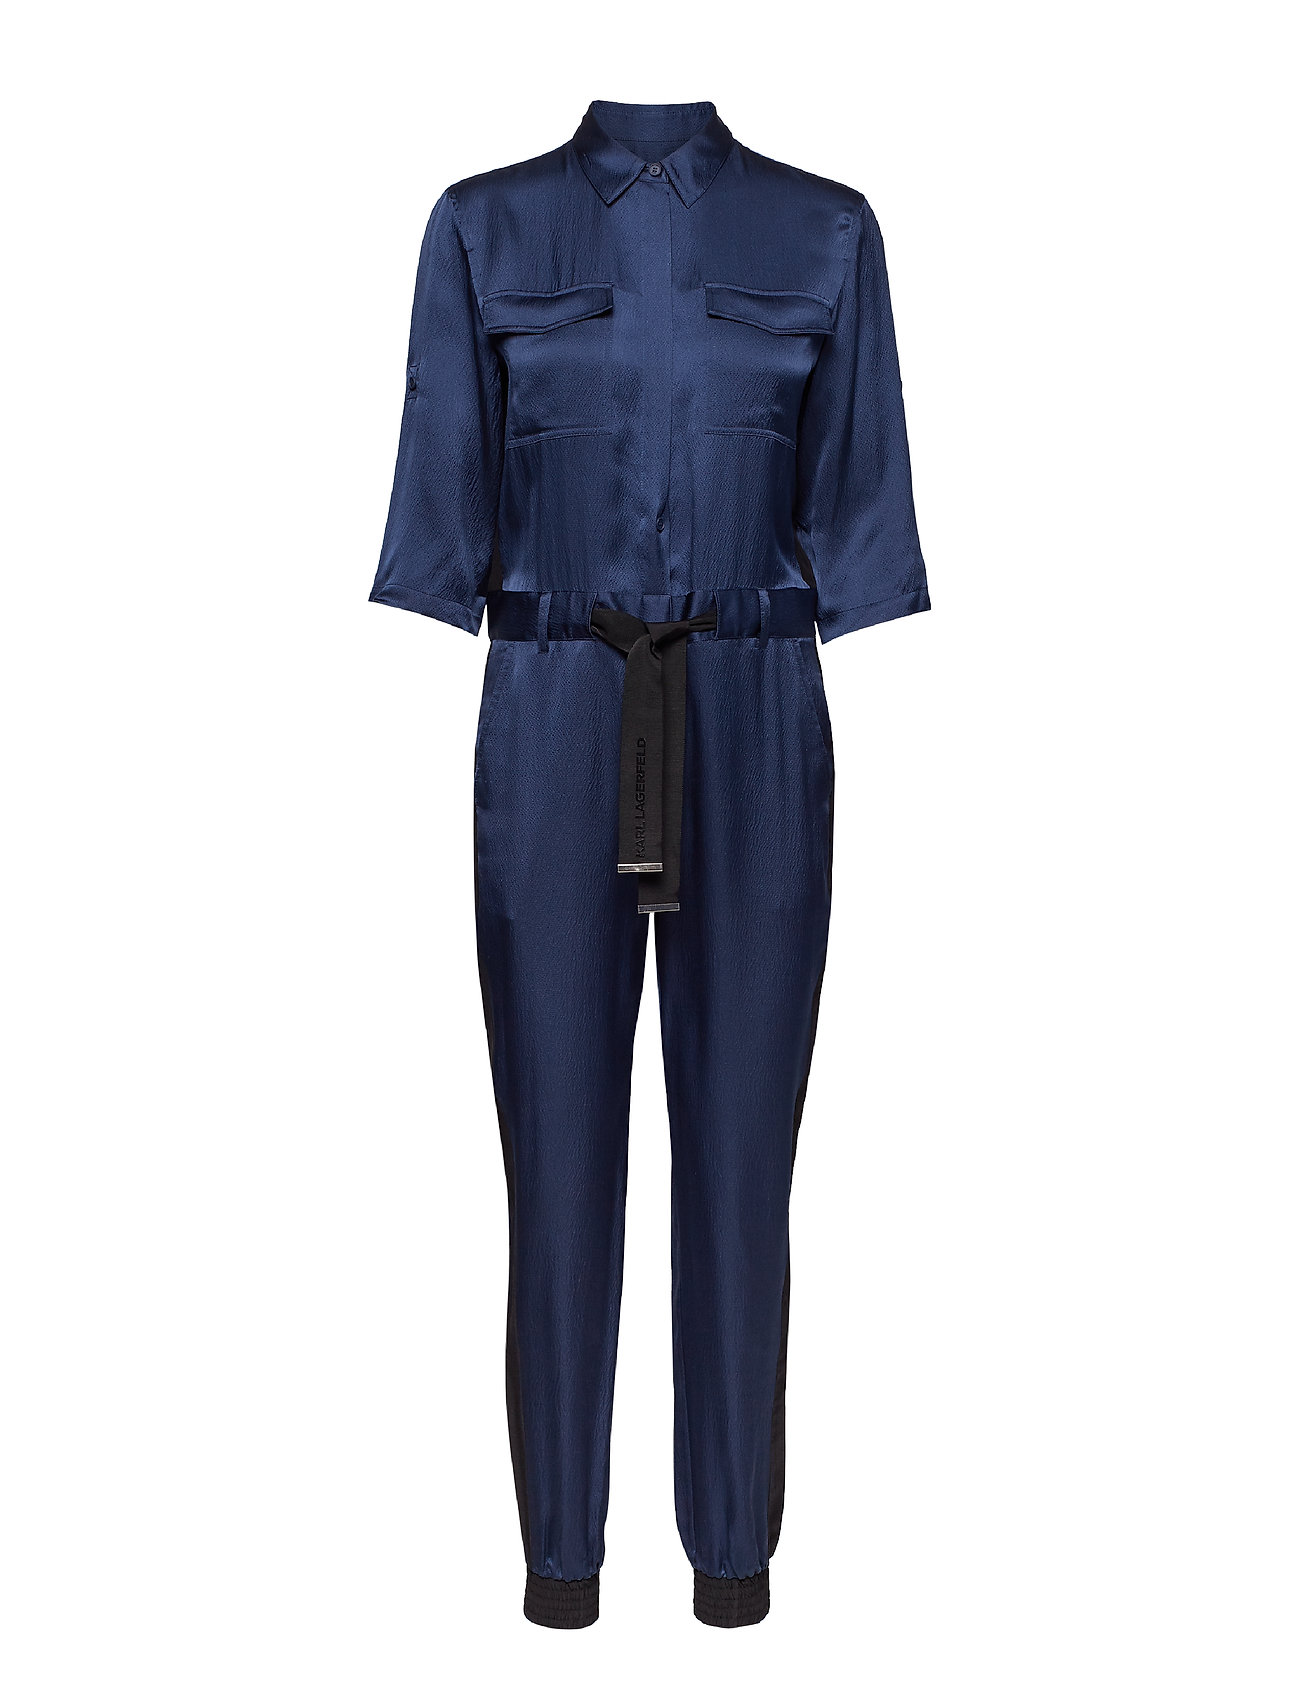 Karl Lagerfeld Silk Shirt Jumpsuit W/Belt